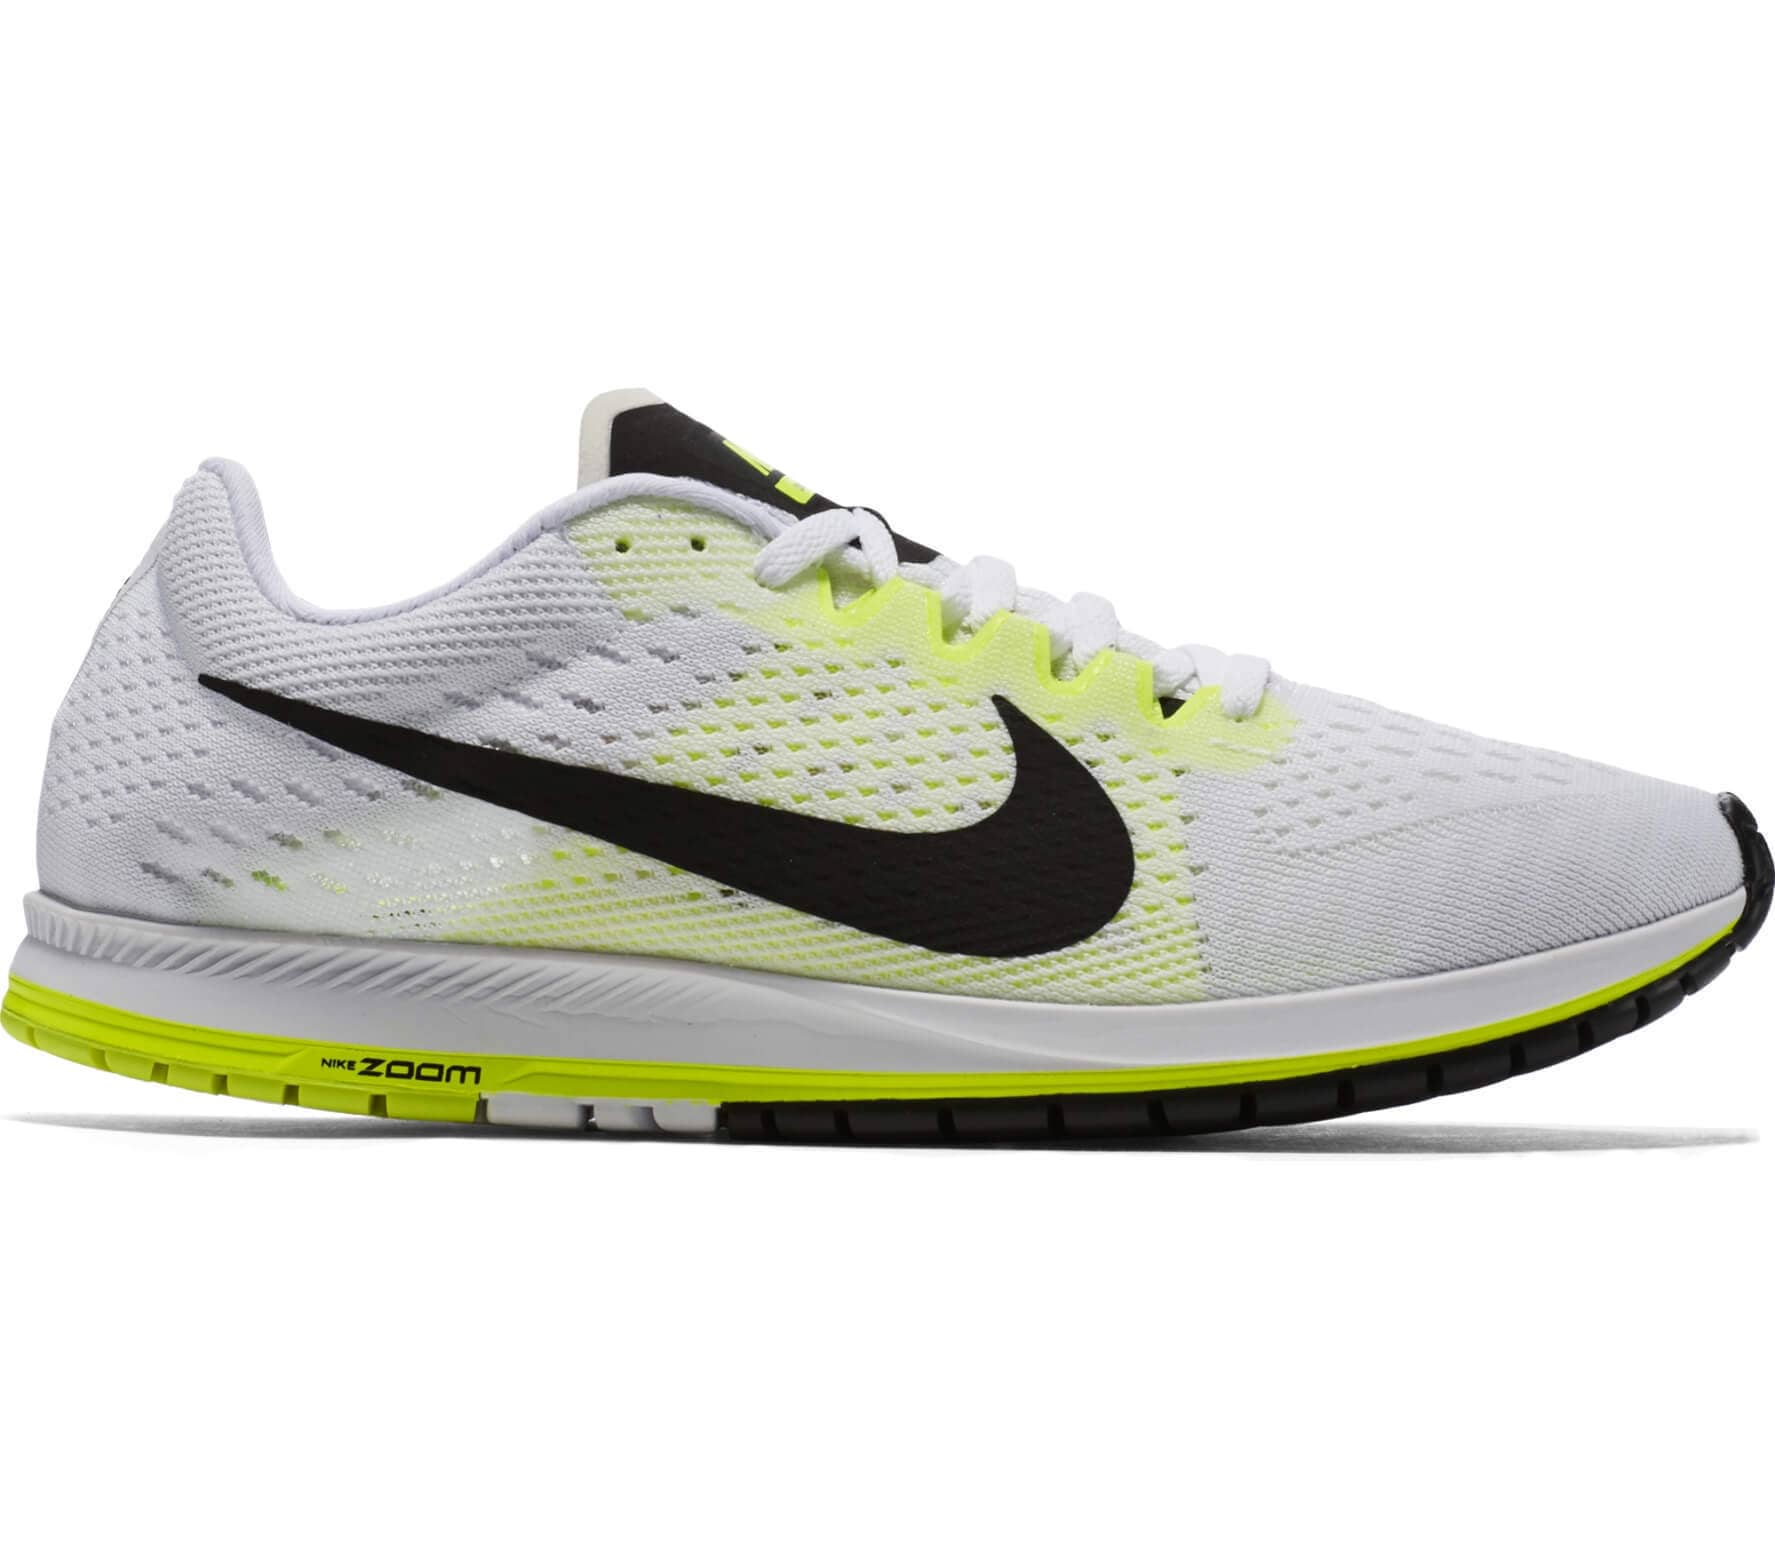 67bace64143 Nike - Air Zoom Streak 6 unisex running shoes (white yellow) - buy ...